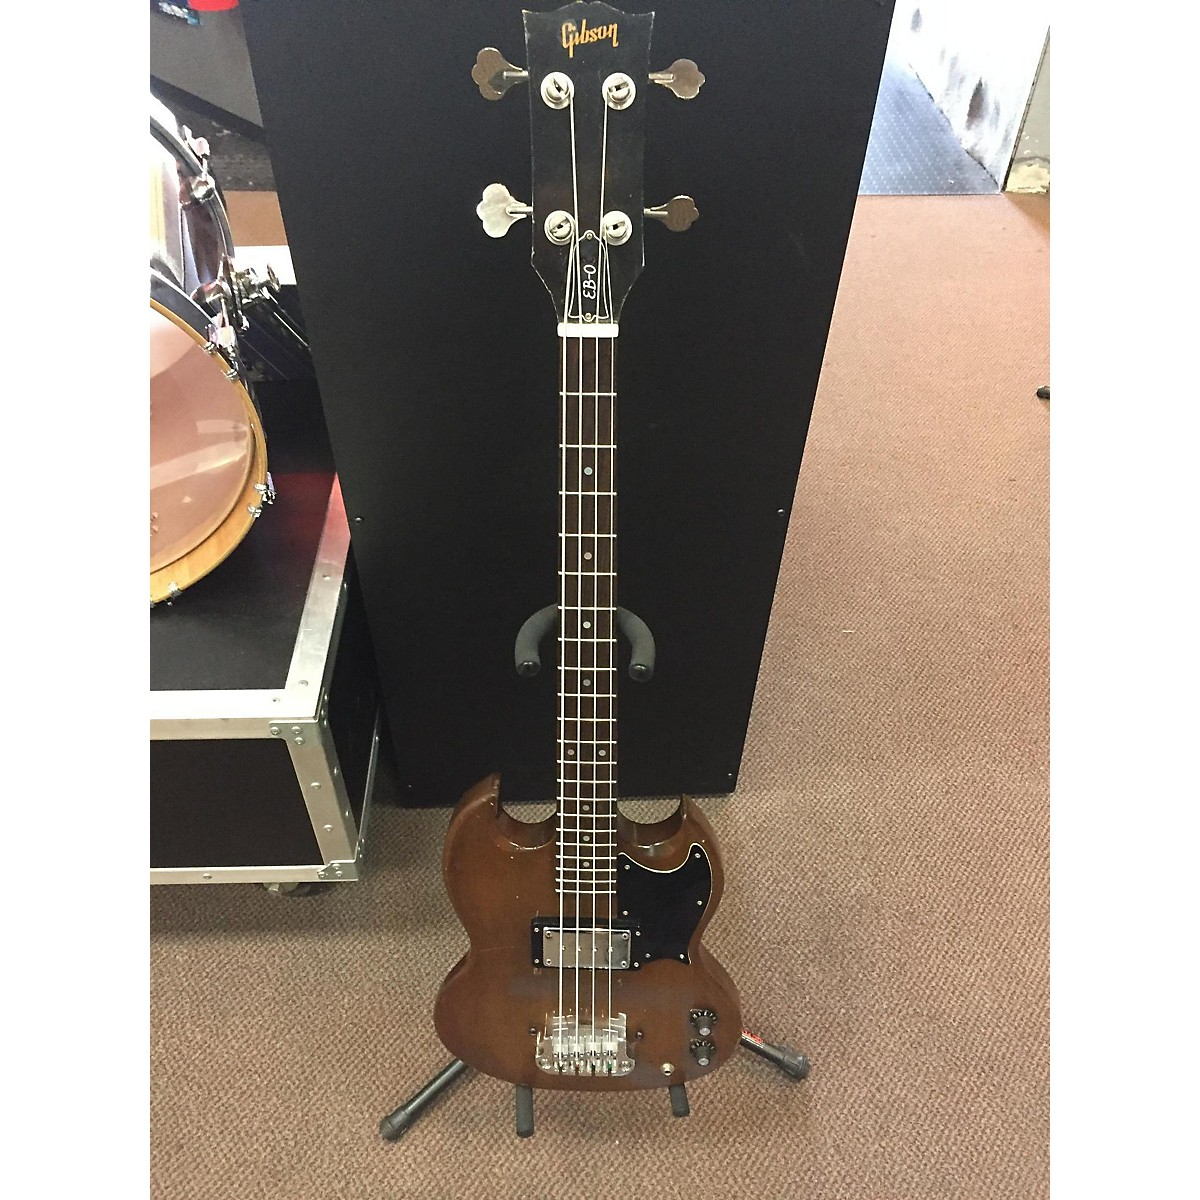 Gibson 1972 EB0 Electric Bass Guitar